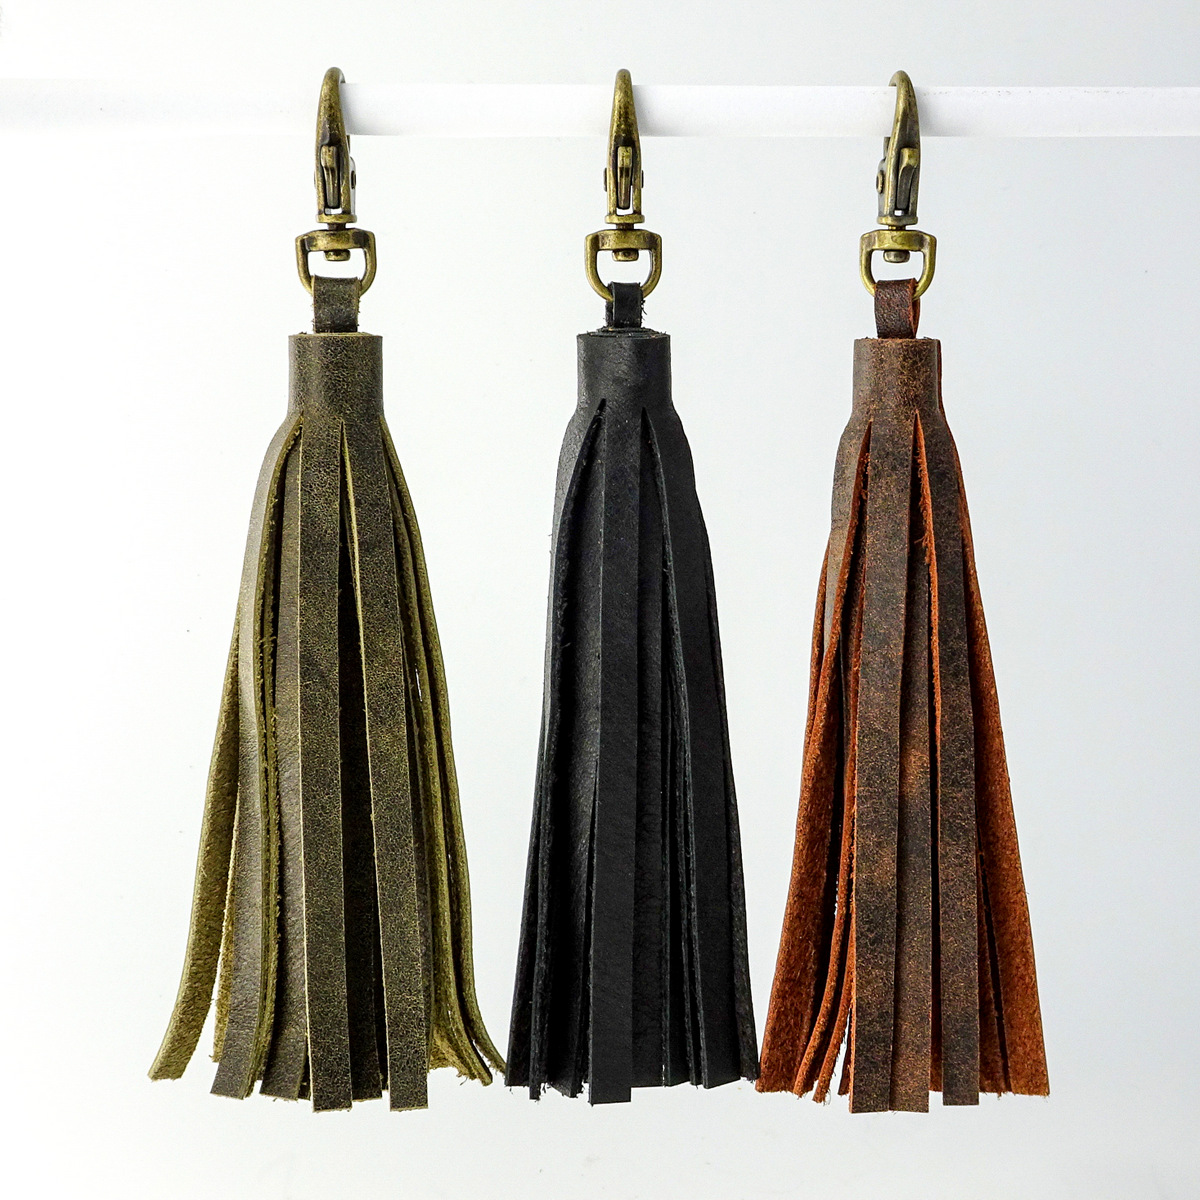 2-Handcrafted Leather Tassels, Nancy LaPlace, LaPlace Leather-001.jpg